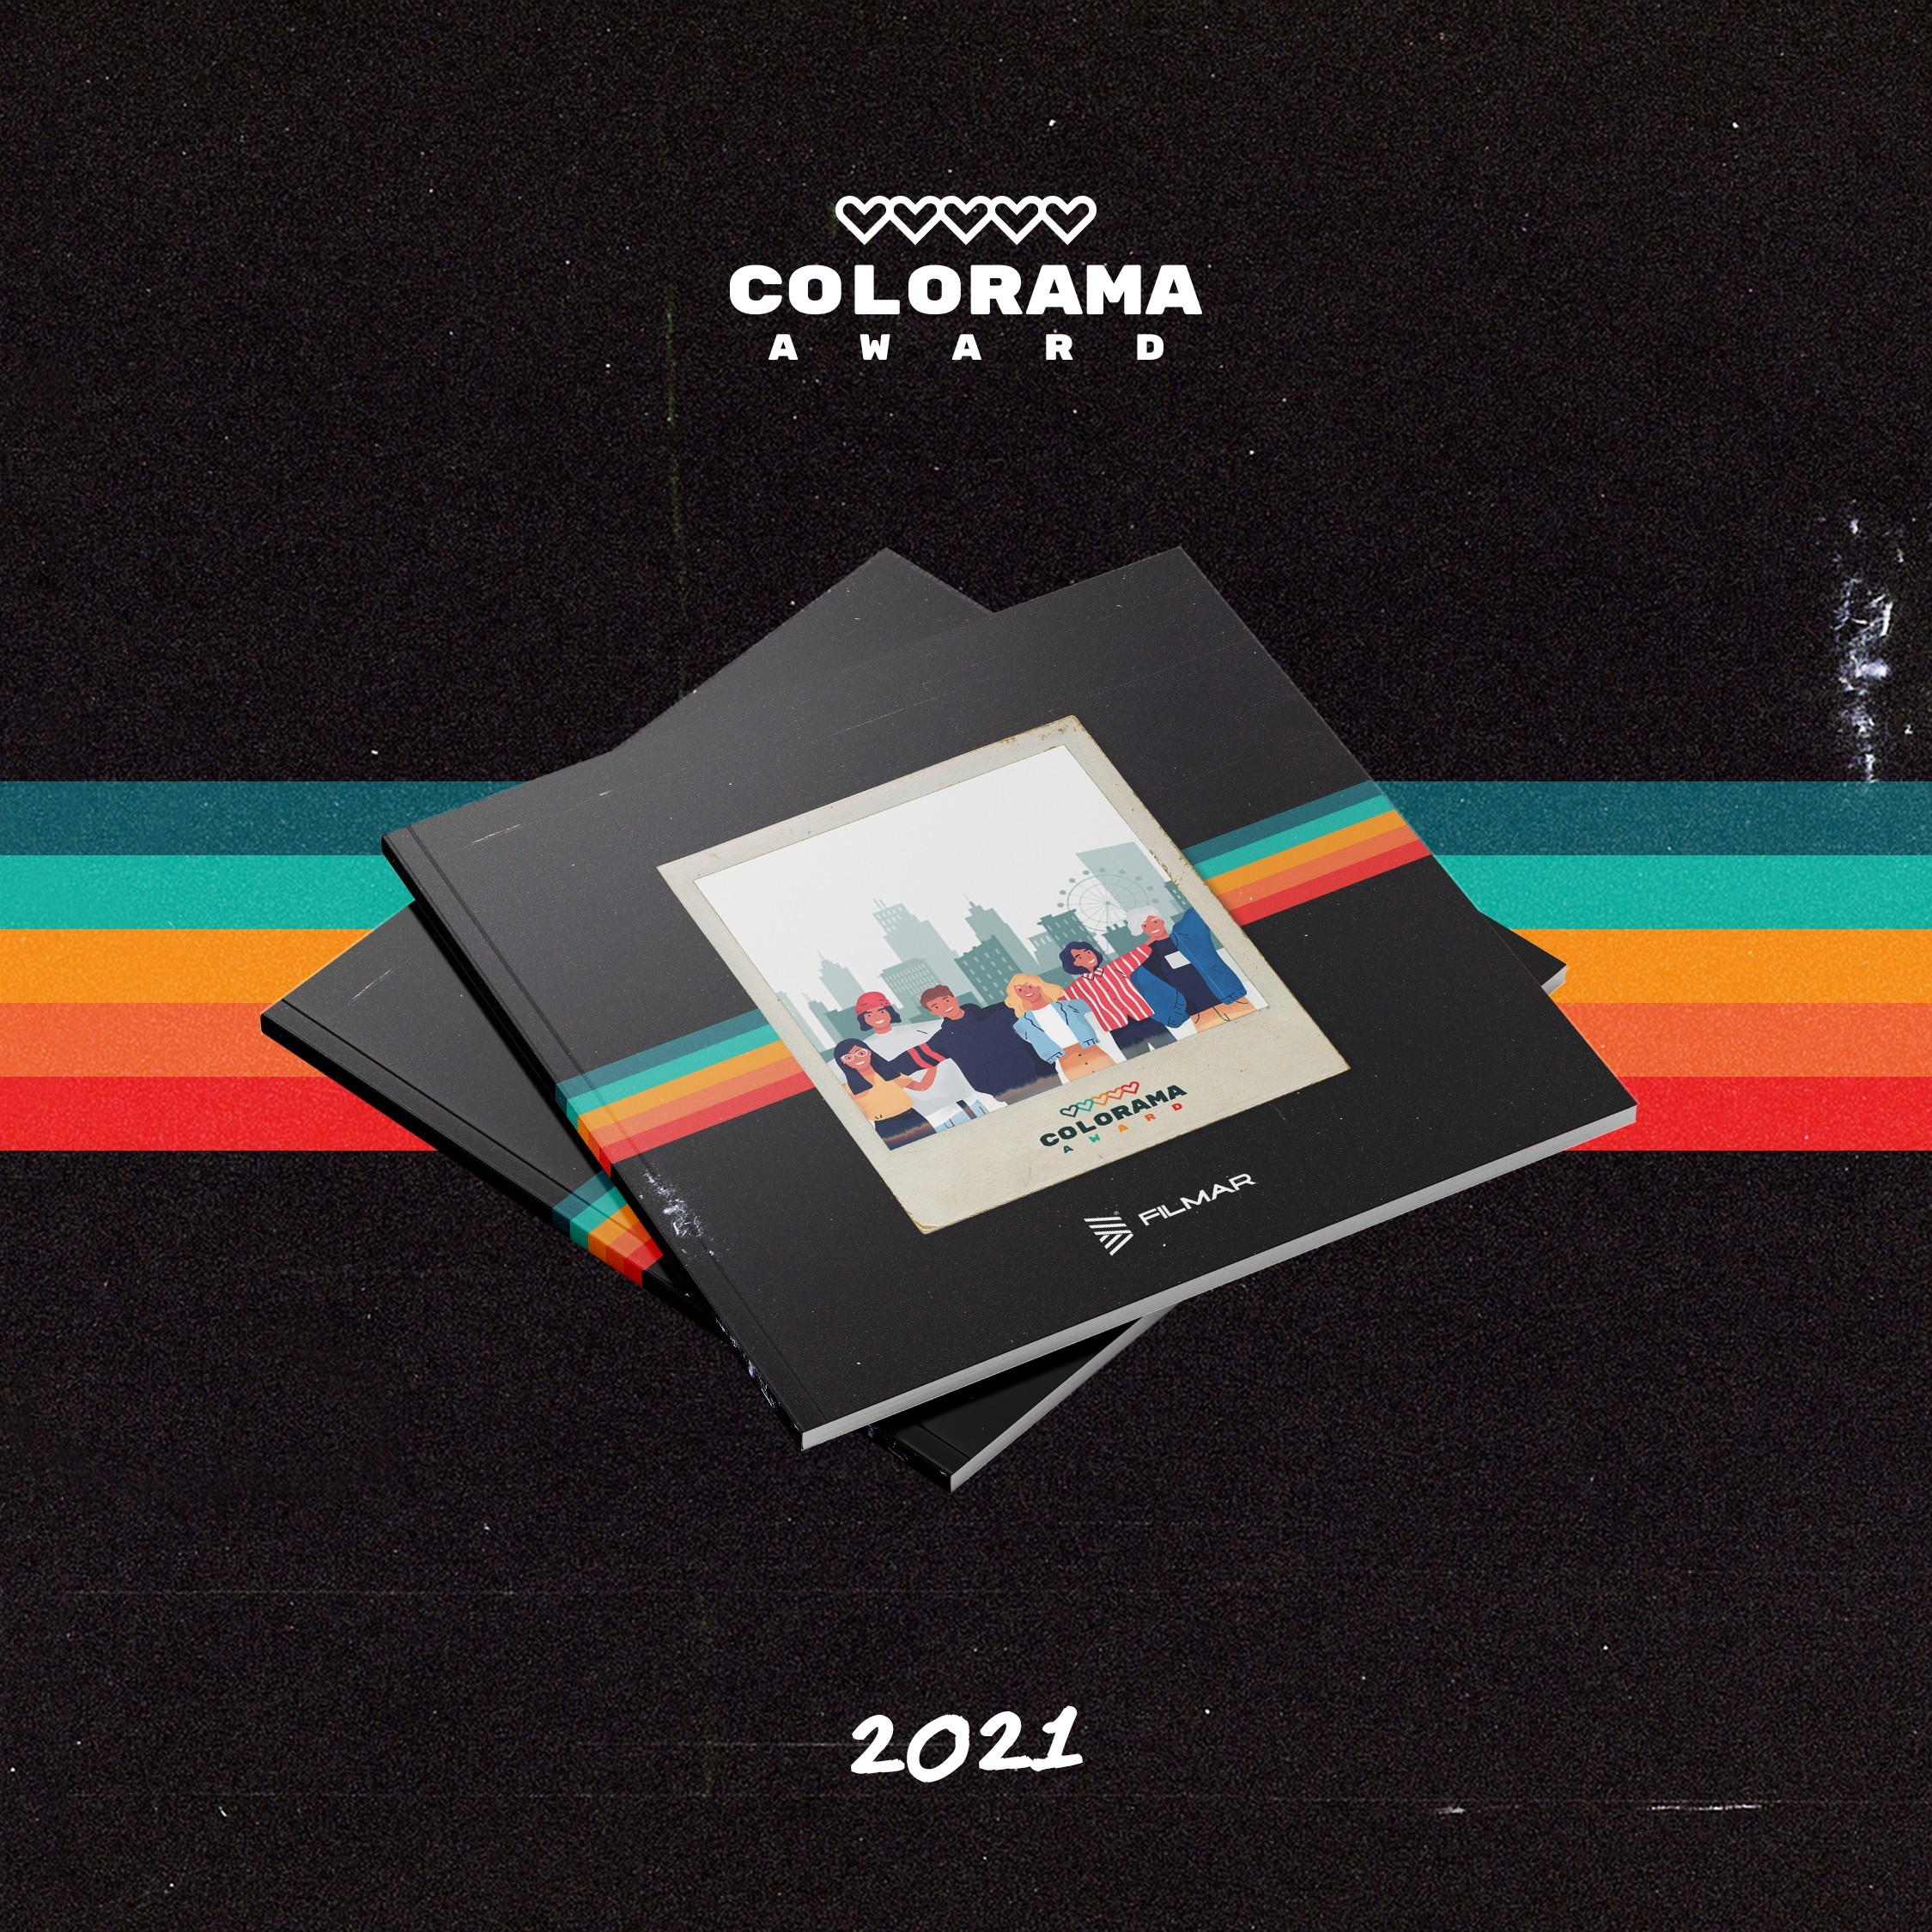 Filmar Launches The 5th Edition Of The Colorama Award